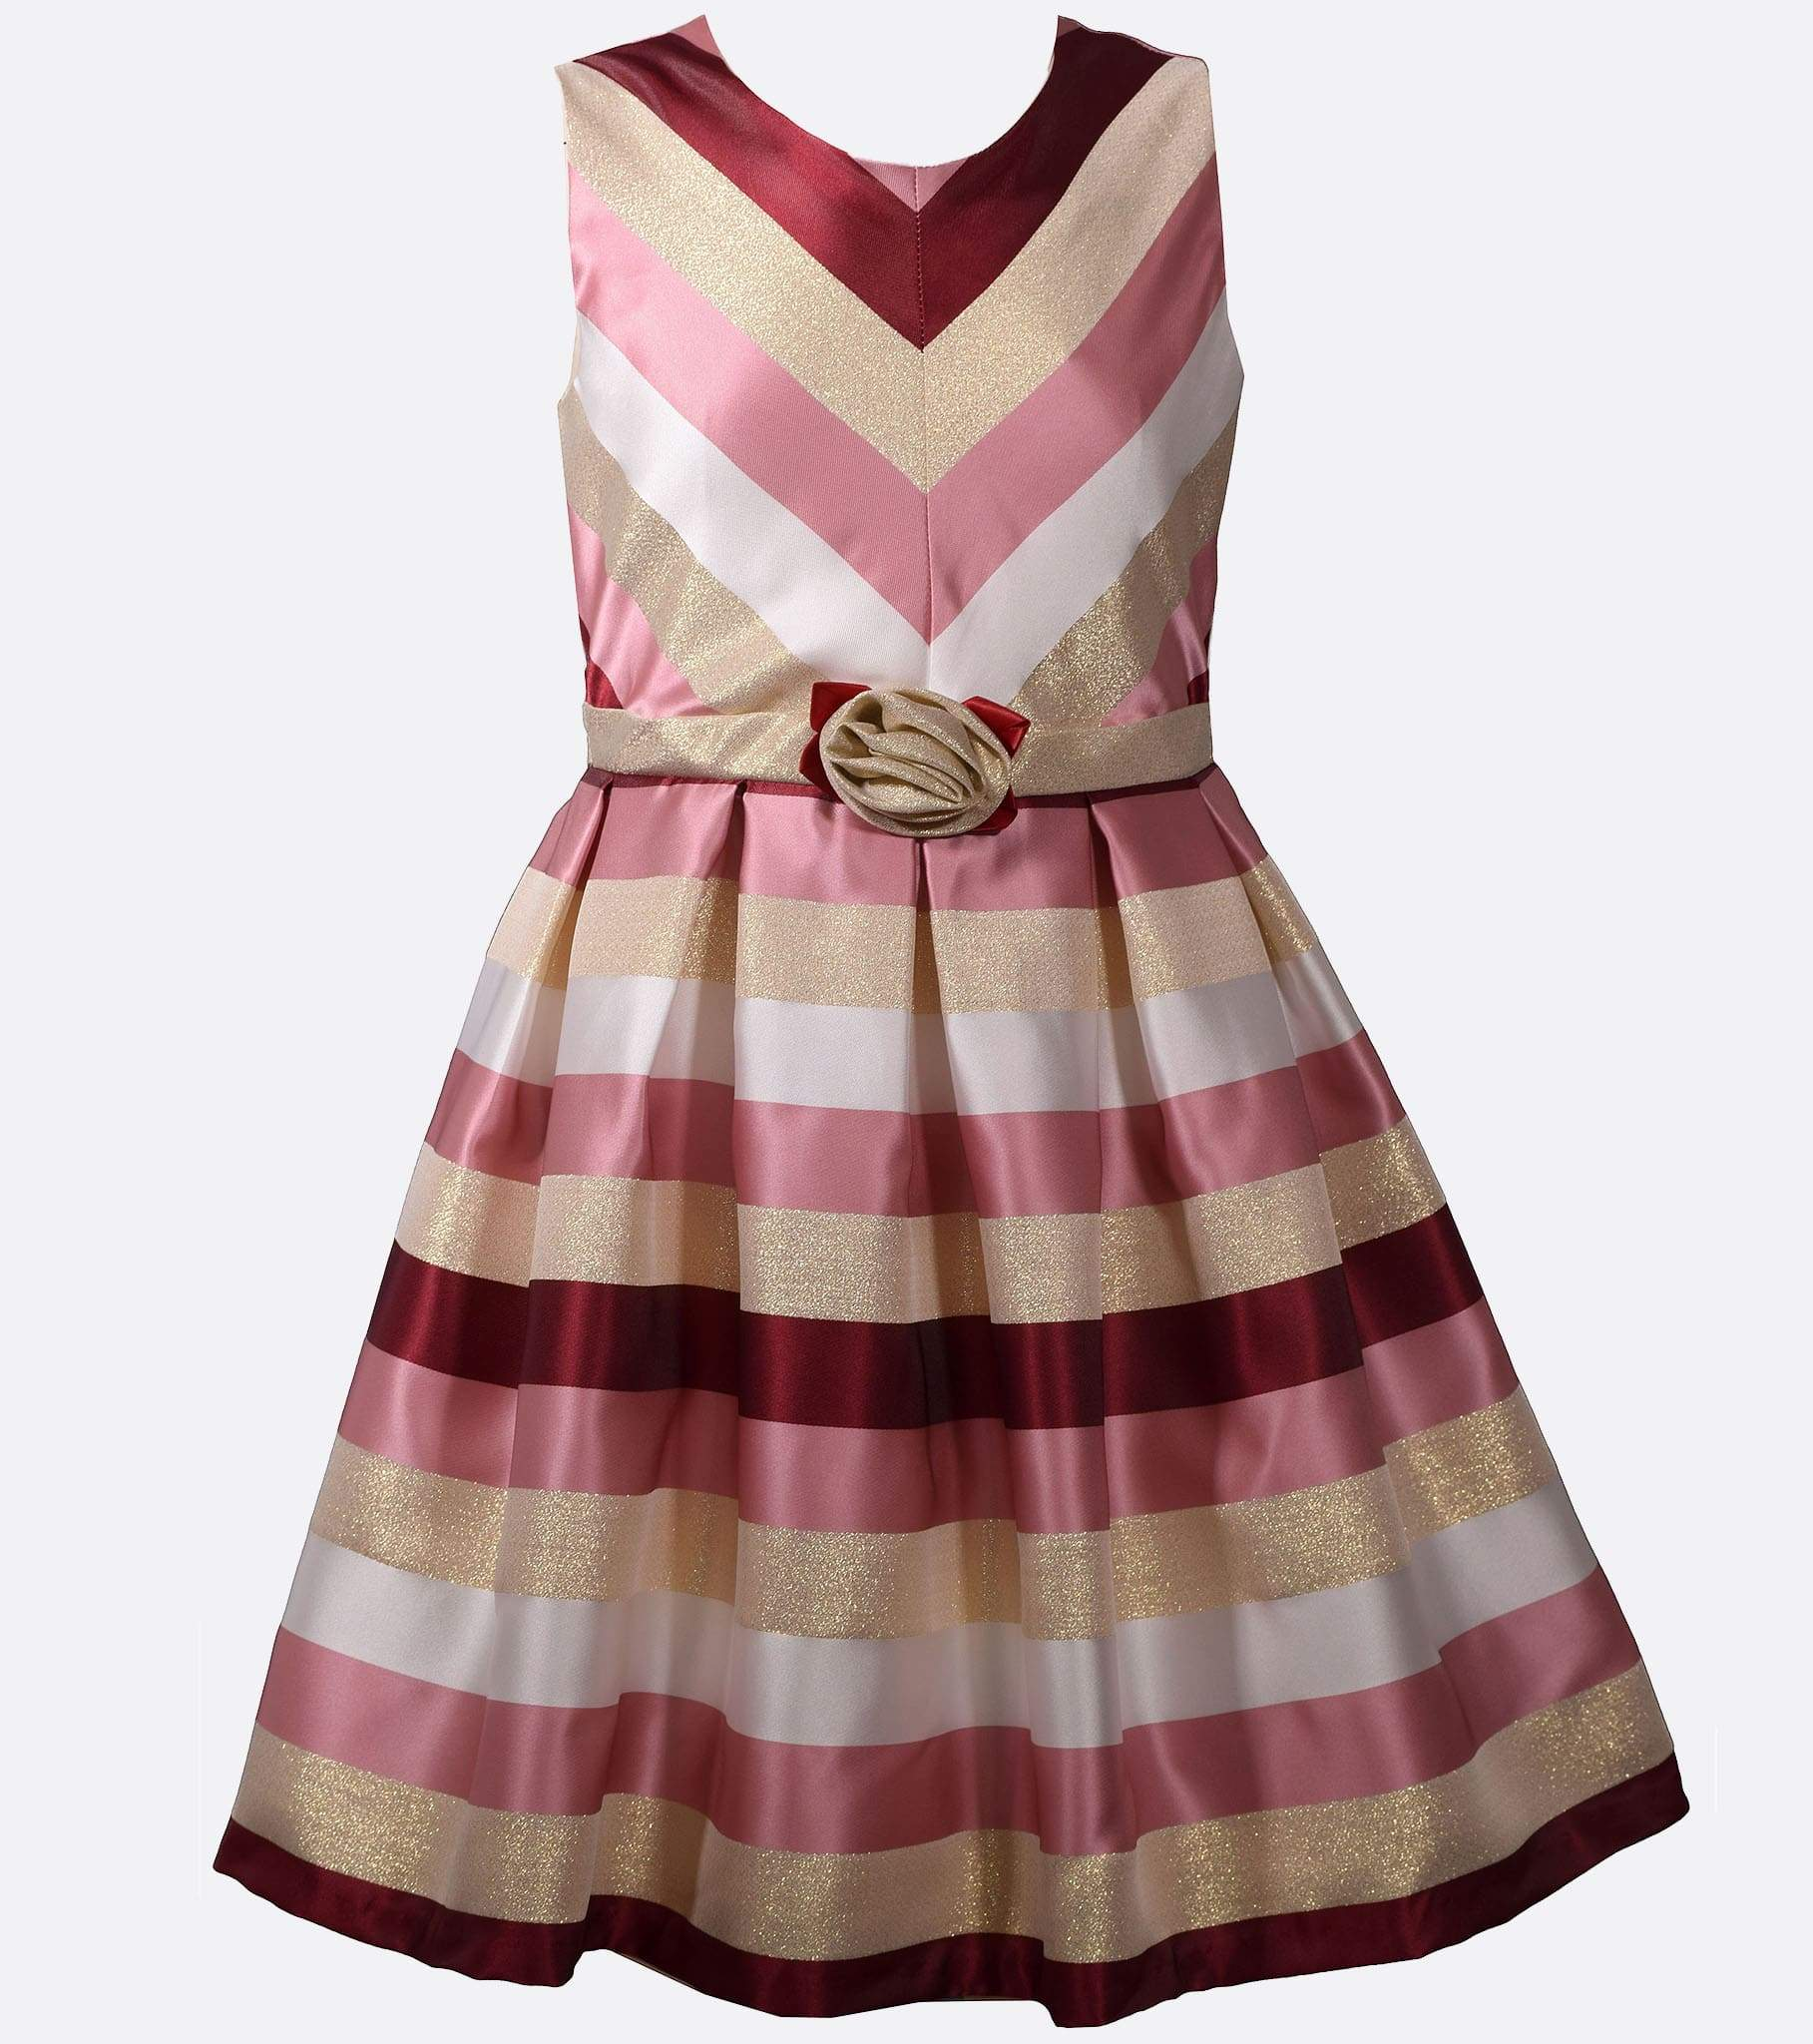 42de55769 Pink and Berry Chevron Party Dress, Girls Plus Size Dresses, Plus Size  Girls Dresses